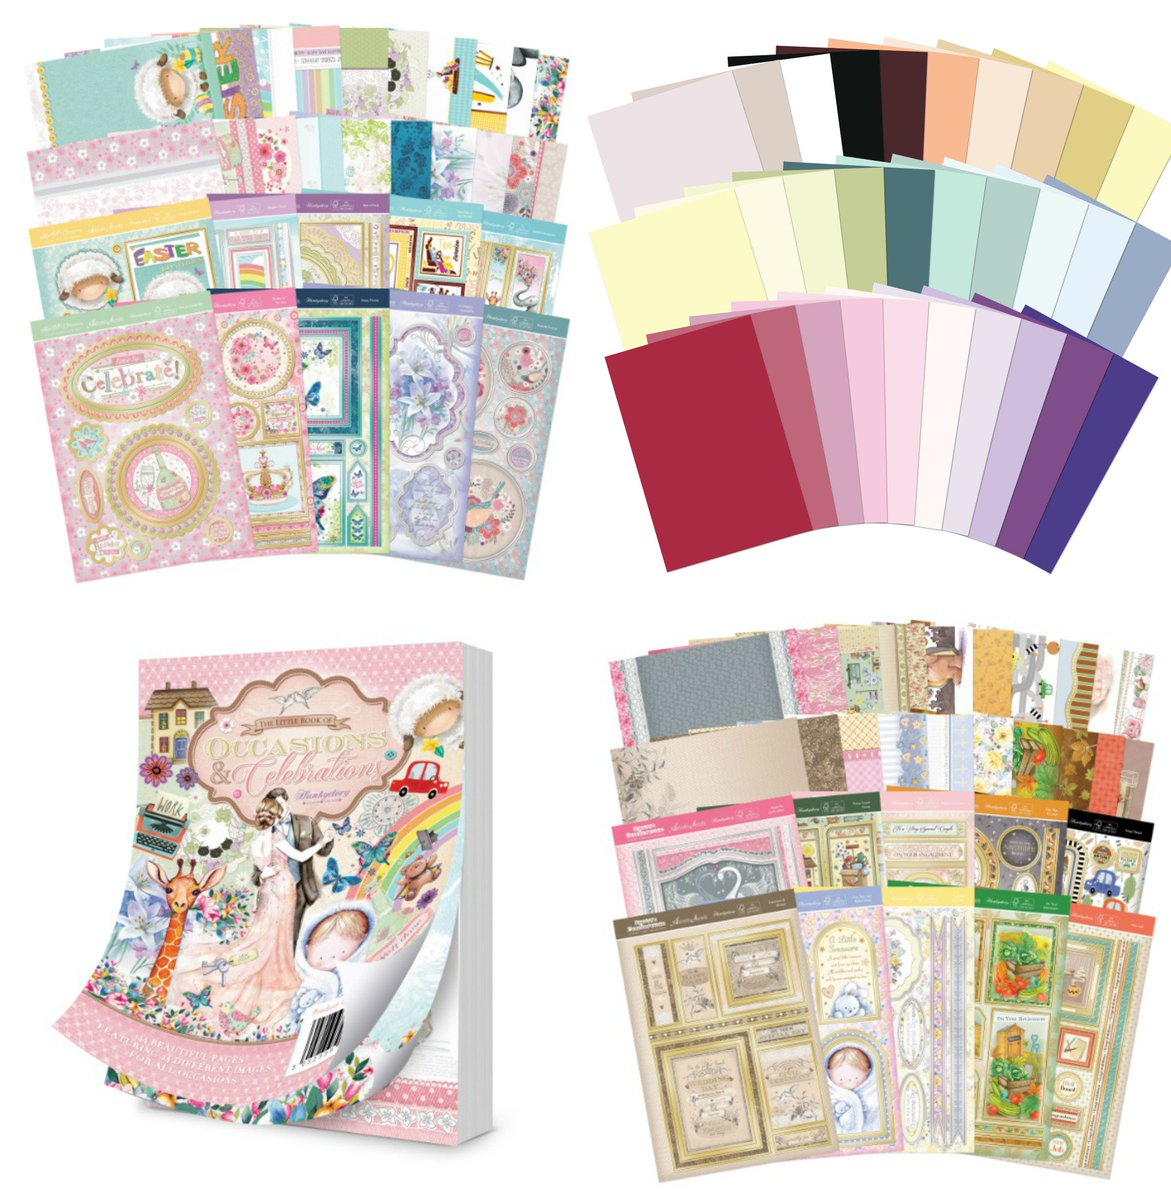 Enter online for your chance to win a Hunkydory Crafts bundle! https://t.co/KoOHeKJ14e https://t.co/vYD3wWSPOx